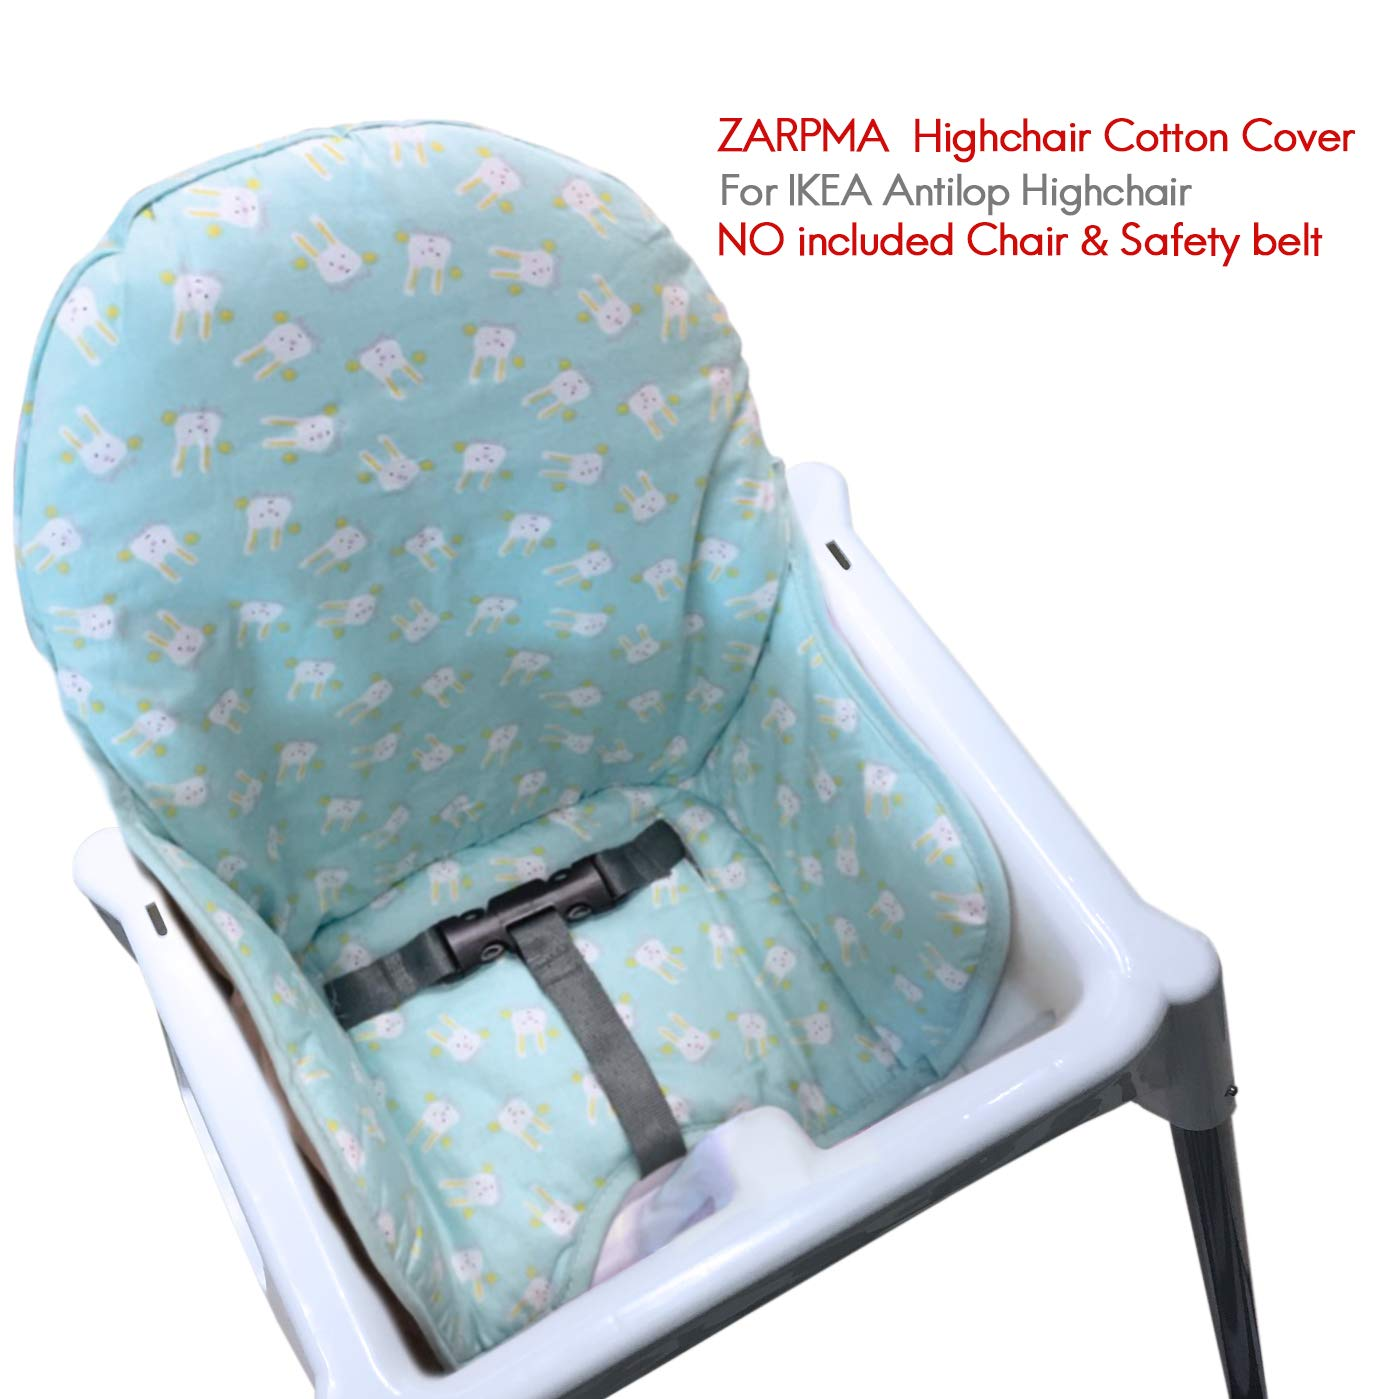 Light Green IKEA Antilop Highchair Cotton Seat Covers by ZARPMA,Padded Cotton,Foldable Baby Highchair Cover IKEA Child Chair Cushion